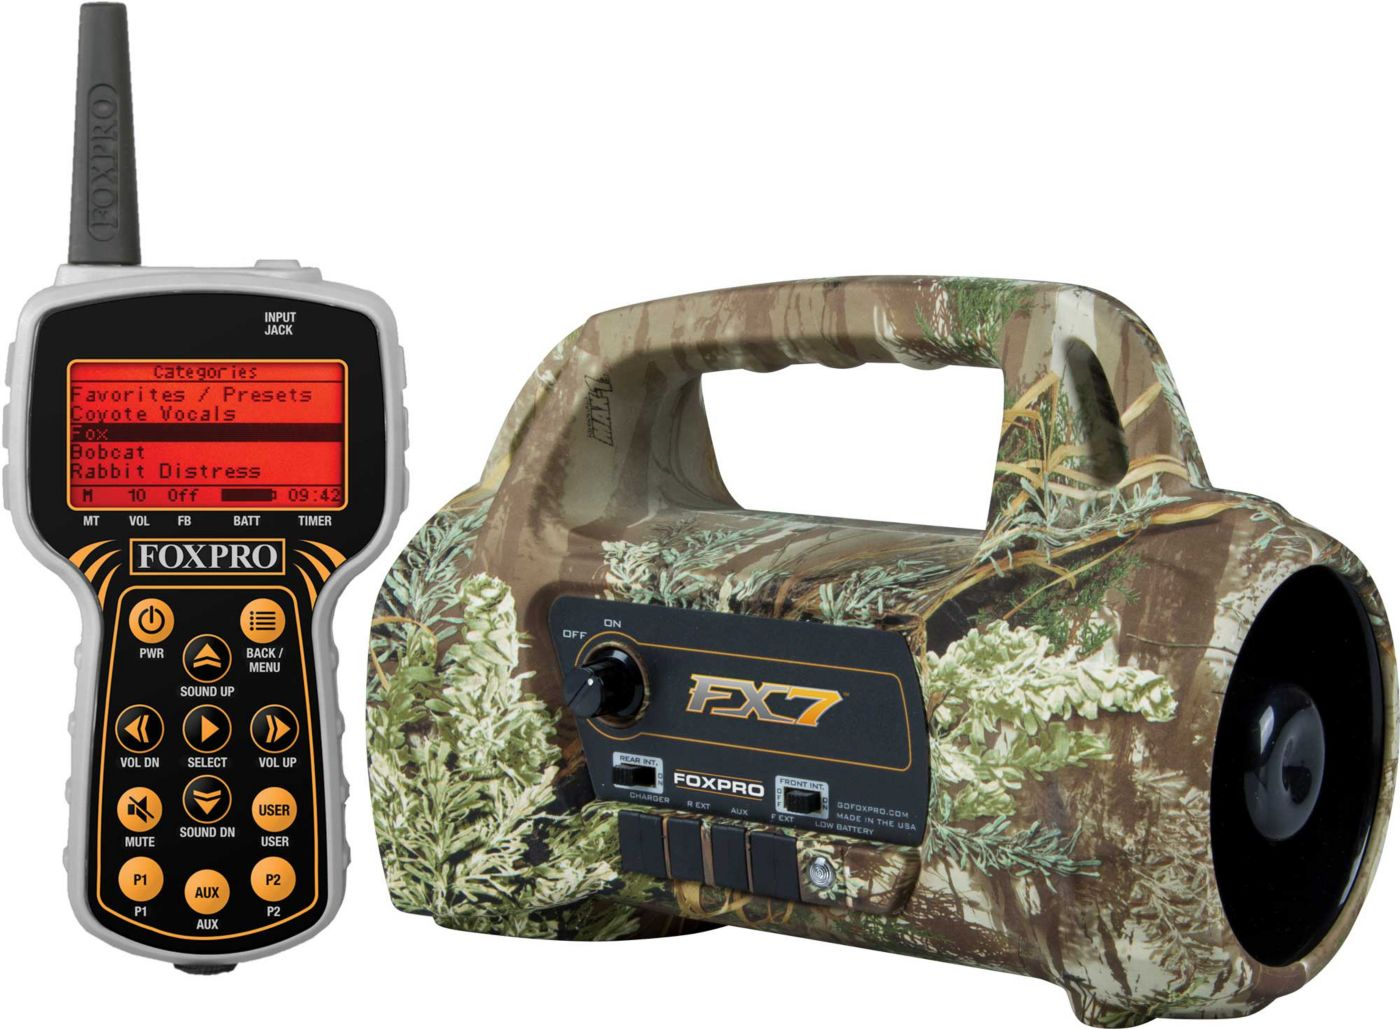 FOXPRO FX7 Digital Call